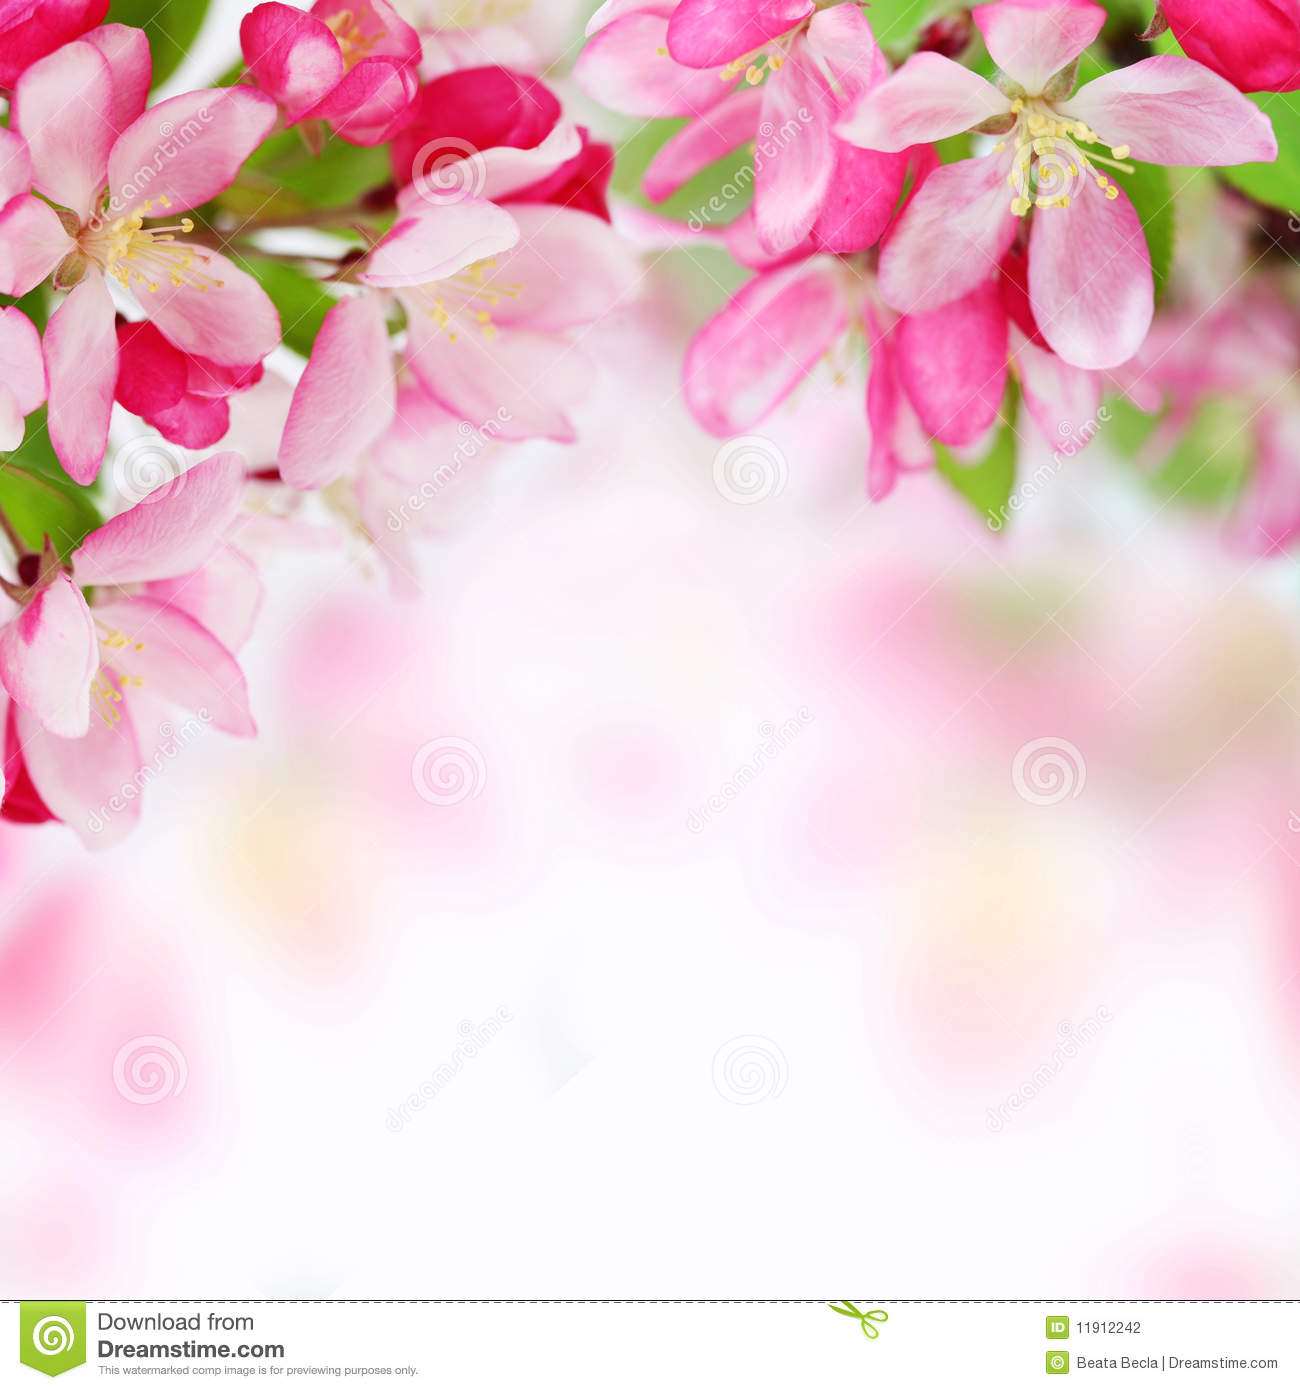 Gallery For: Flowers Background Pictures, Flowers Wallpapers, Top ... graphic library